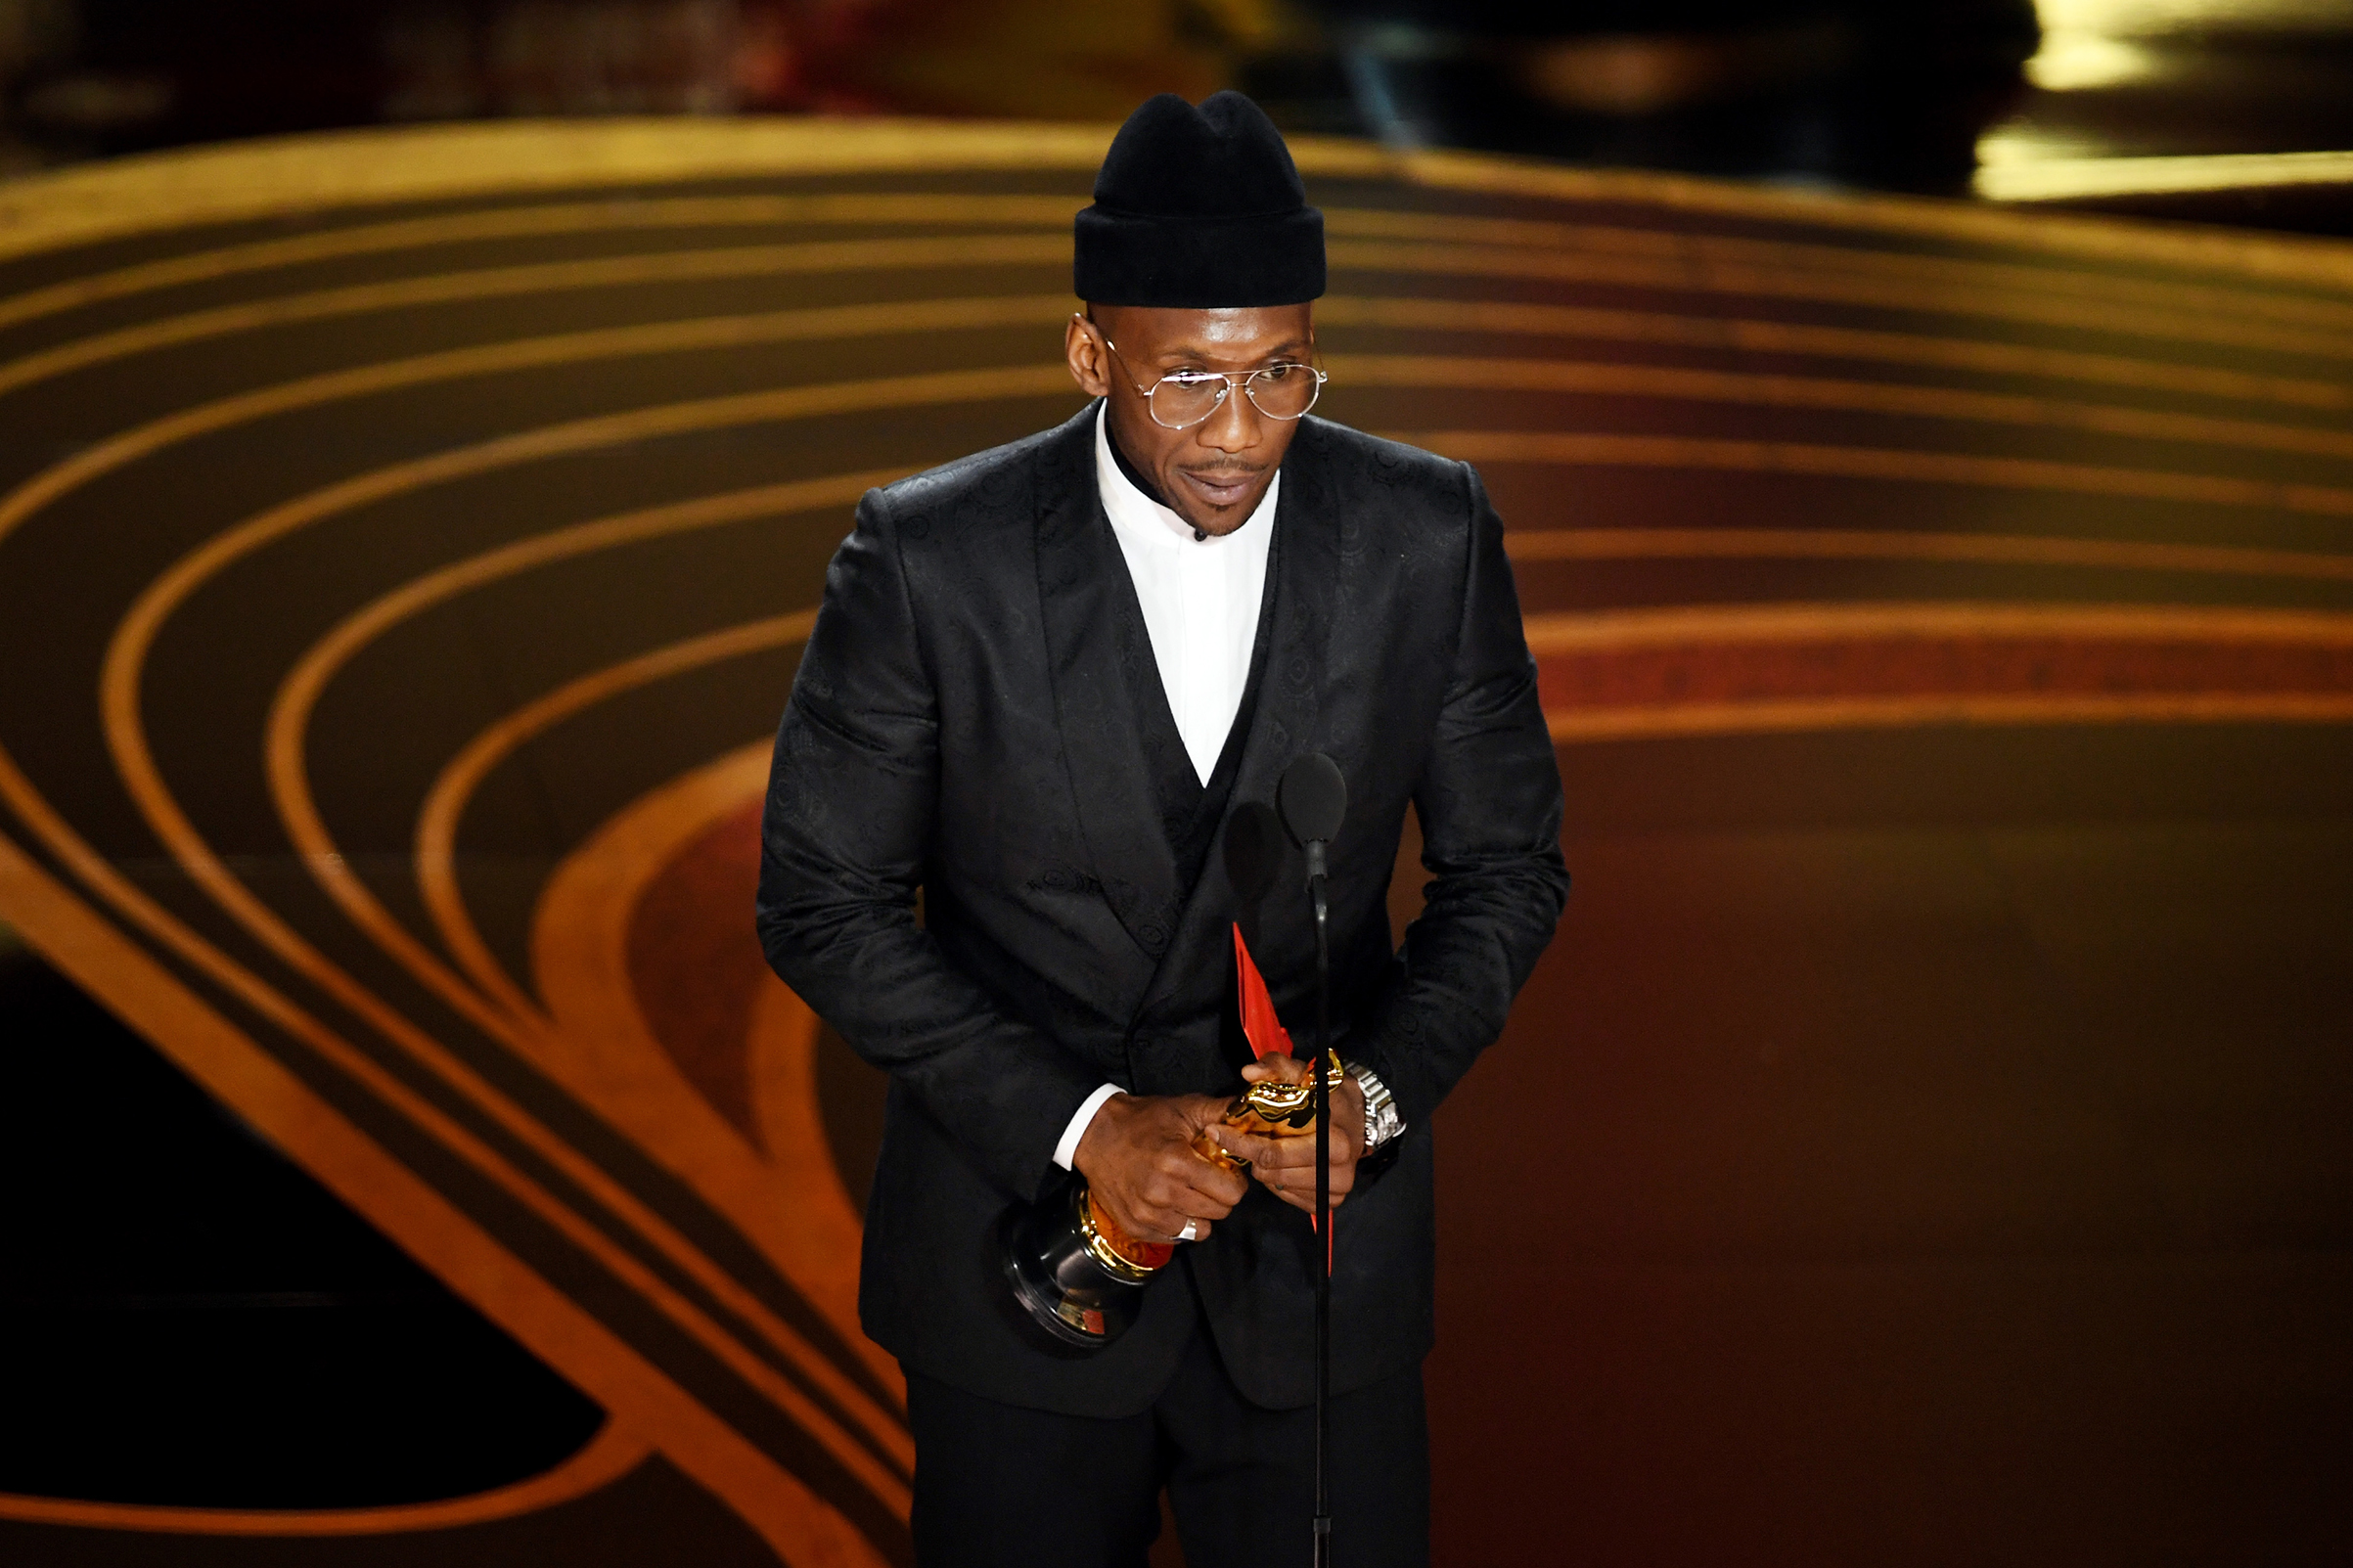 Mahershala Ali accepts the Actor in a Supporting Role award for 'Green Book' onstage during the 91st Annual Academy Awards at Dolby Theatre on Feb. 24, 2019.